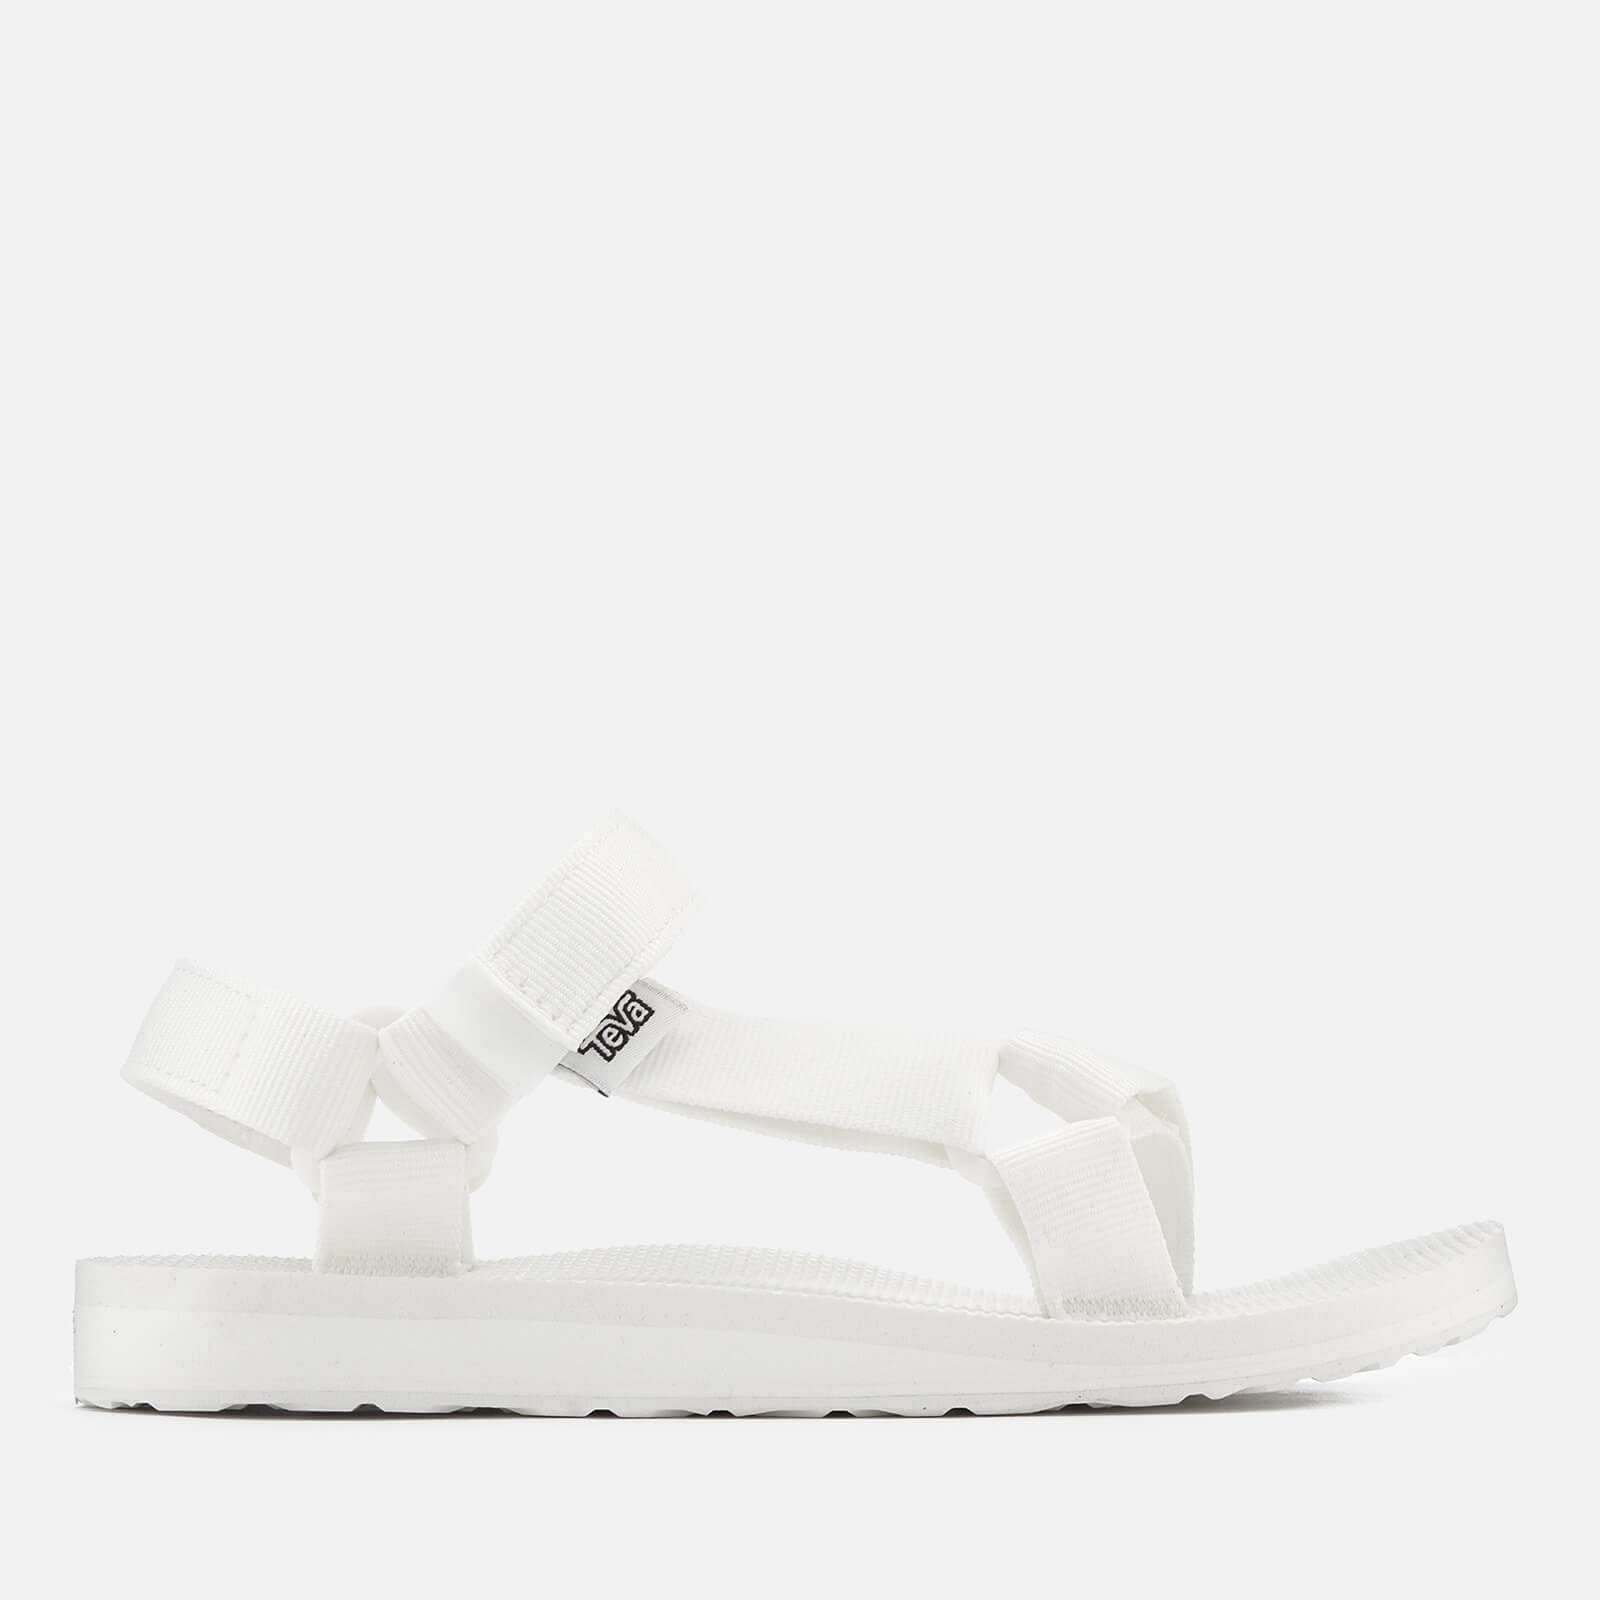 Teva Women's Original Universal Sport Sandals - Bright White - UK 7